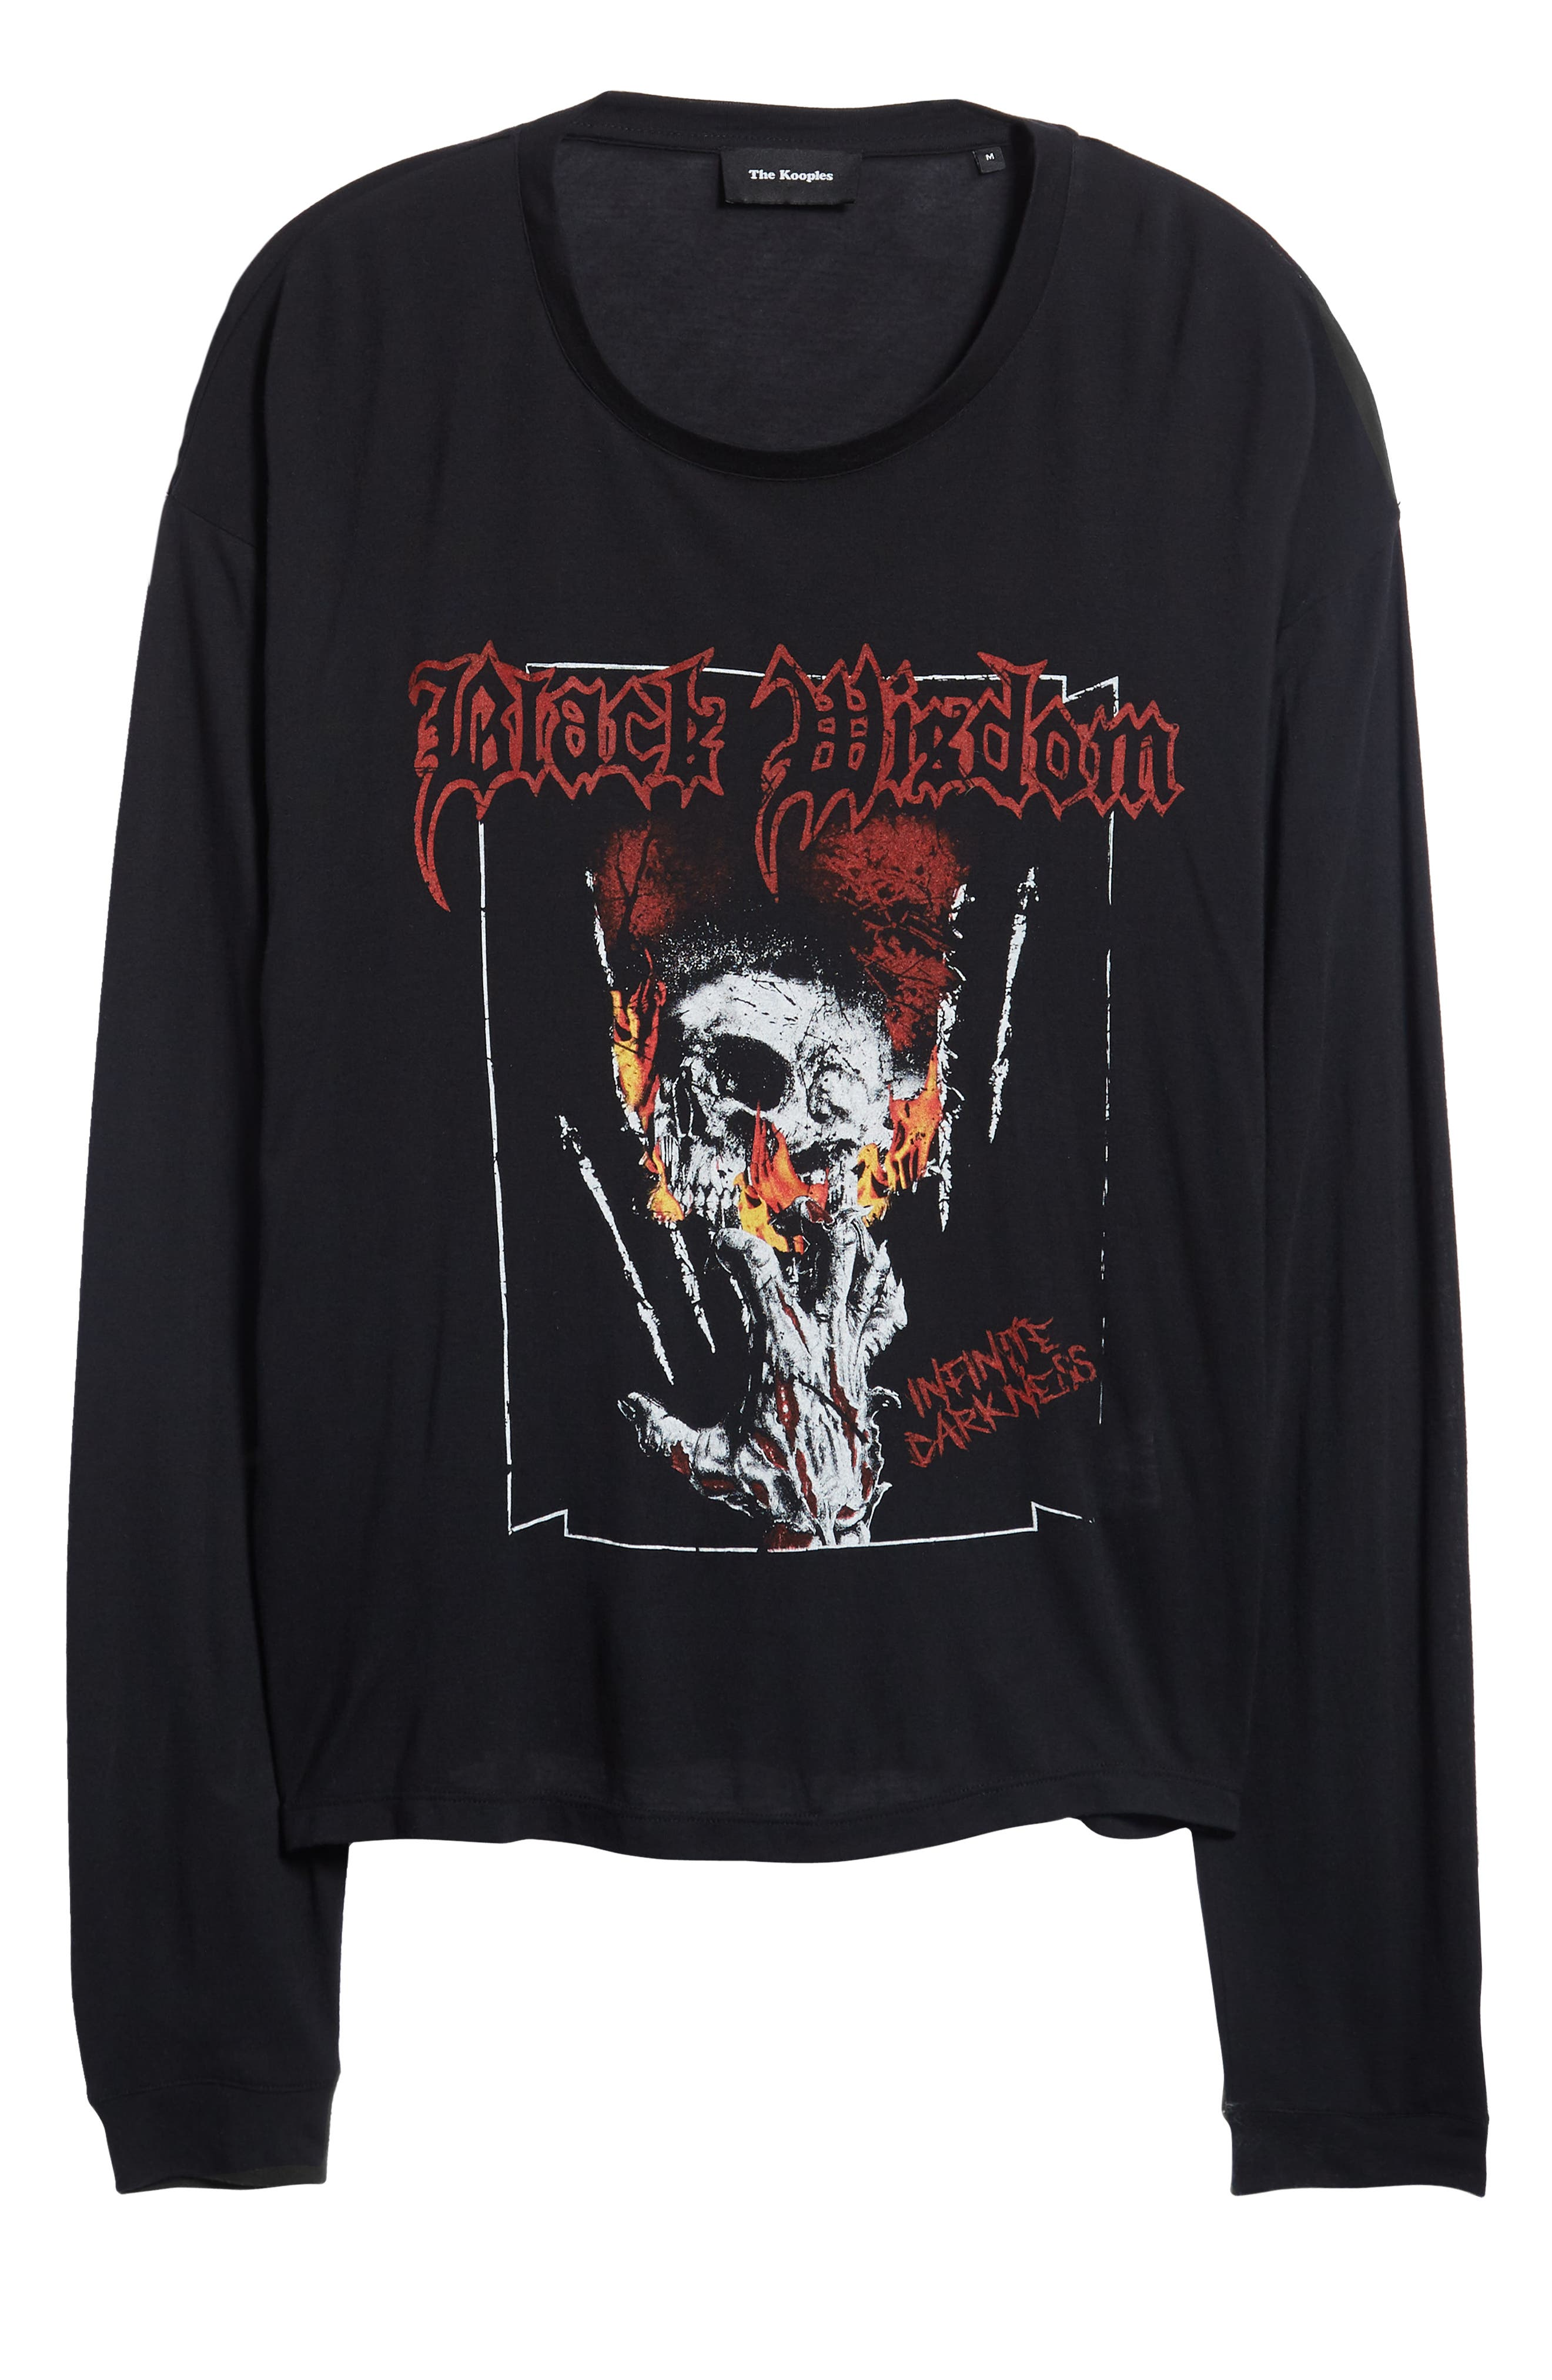 Black Wisdom Graphic Long Sleeve T-Shirt,                             Alternate thumbnail 6, color,                             BLACK